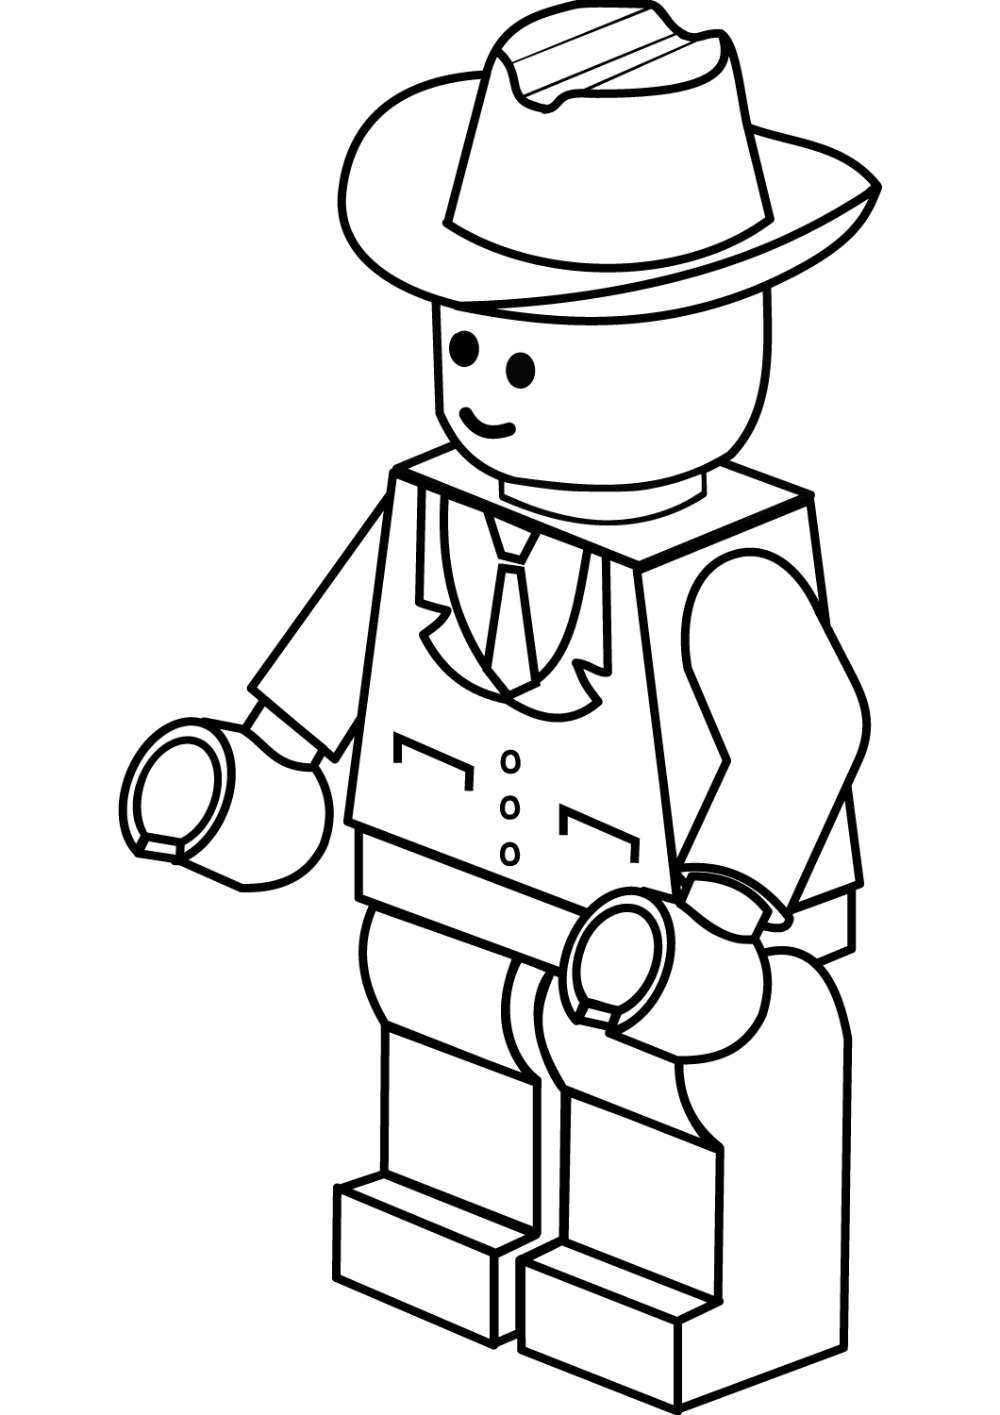 printable lego coloring pages free printable lego coloring pages for kids cool2bkids printable lego pages coloring